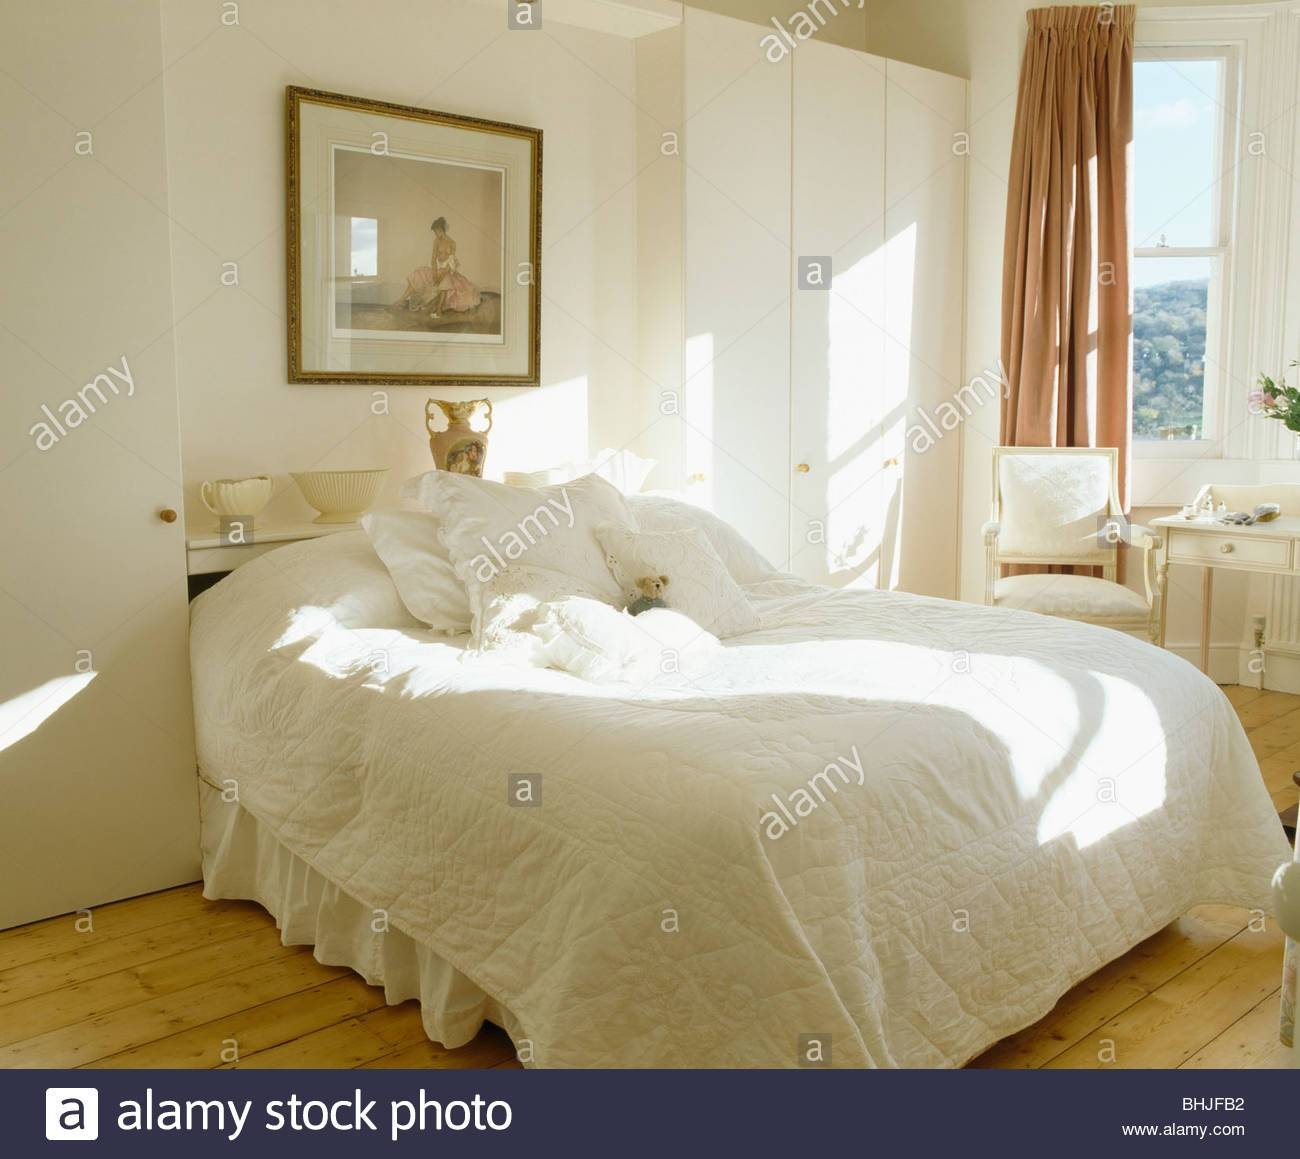 Picture On Wall Above Bed With White Quilt In White Country intended for Wardrobes Above Bed (Image 12 of 15)